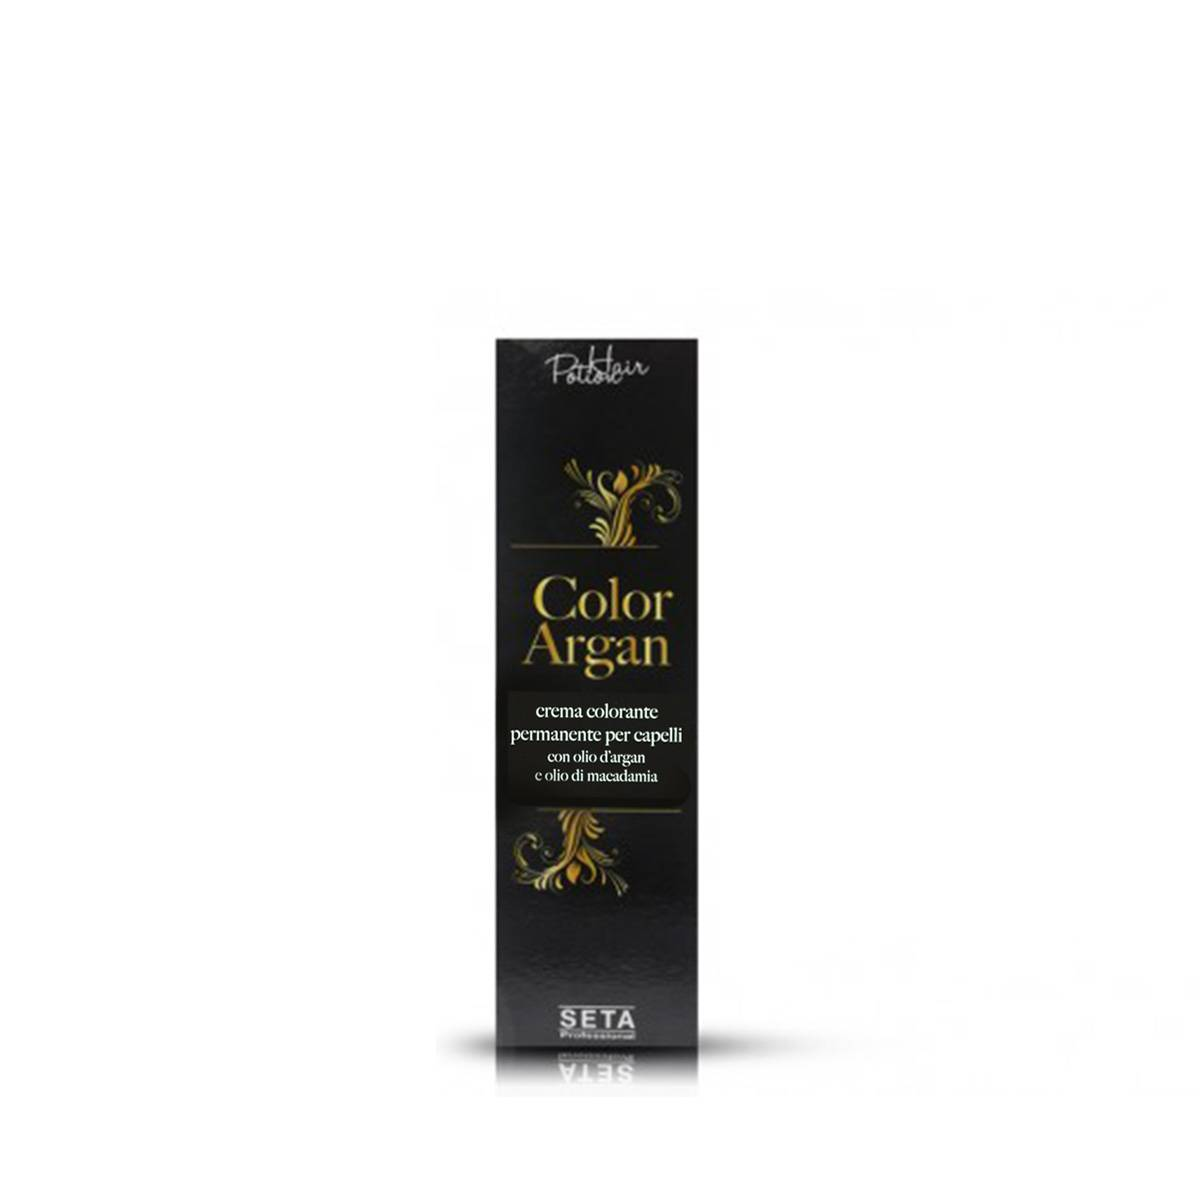 Color Argan Hair Potion 120 Ml Bn. 7/4 Iondo Rame